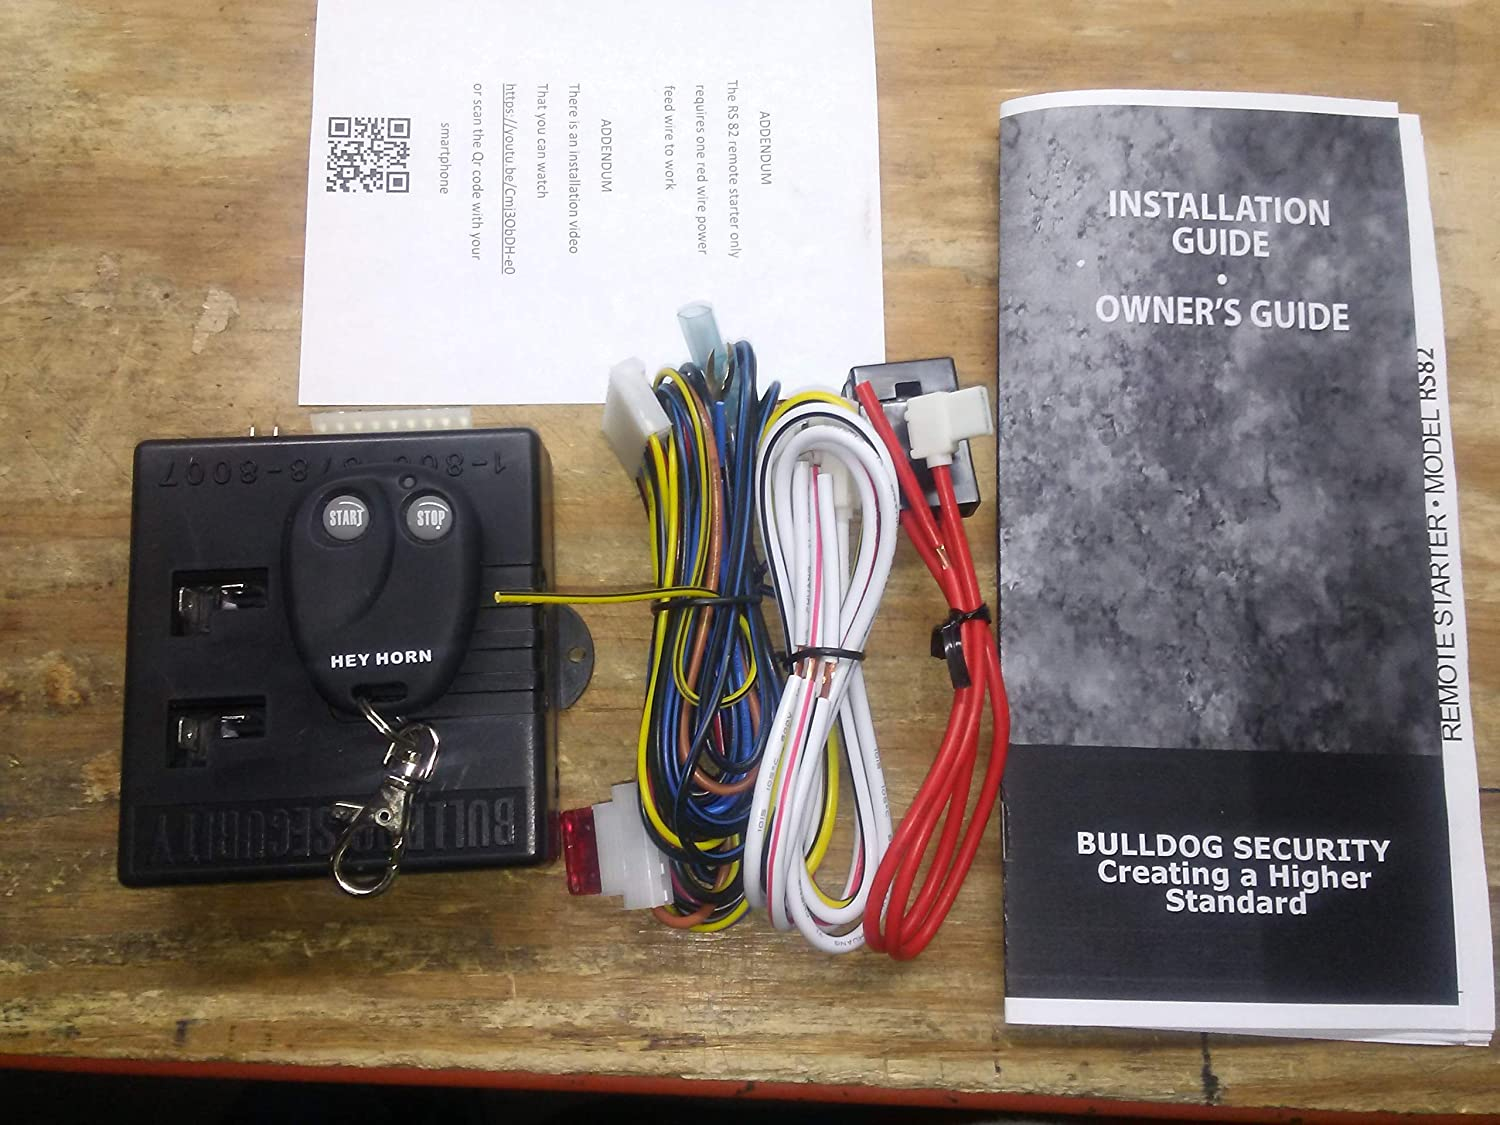 bulldog keyless entry system wiring diagram amazon com bulldog rs82 i do it yourself remote starter  bulldog rs82 i do it yourself remote